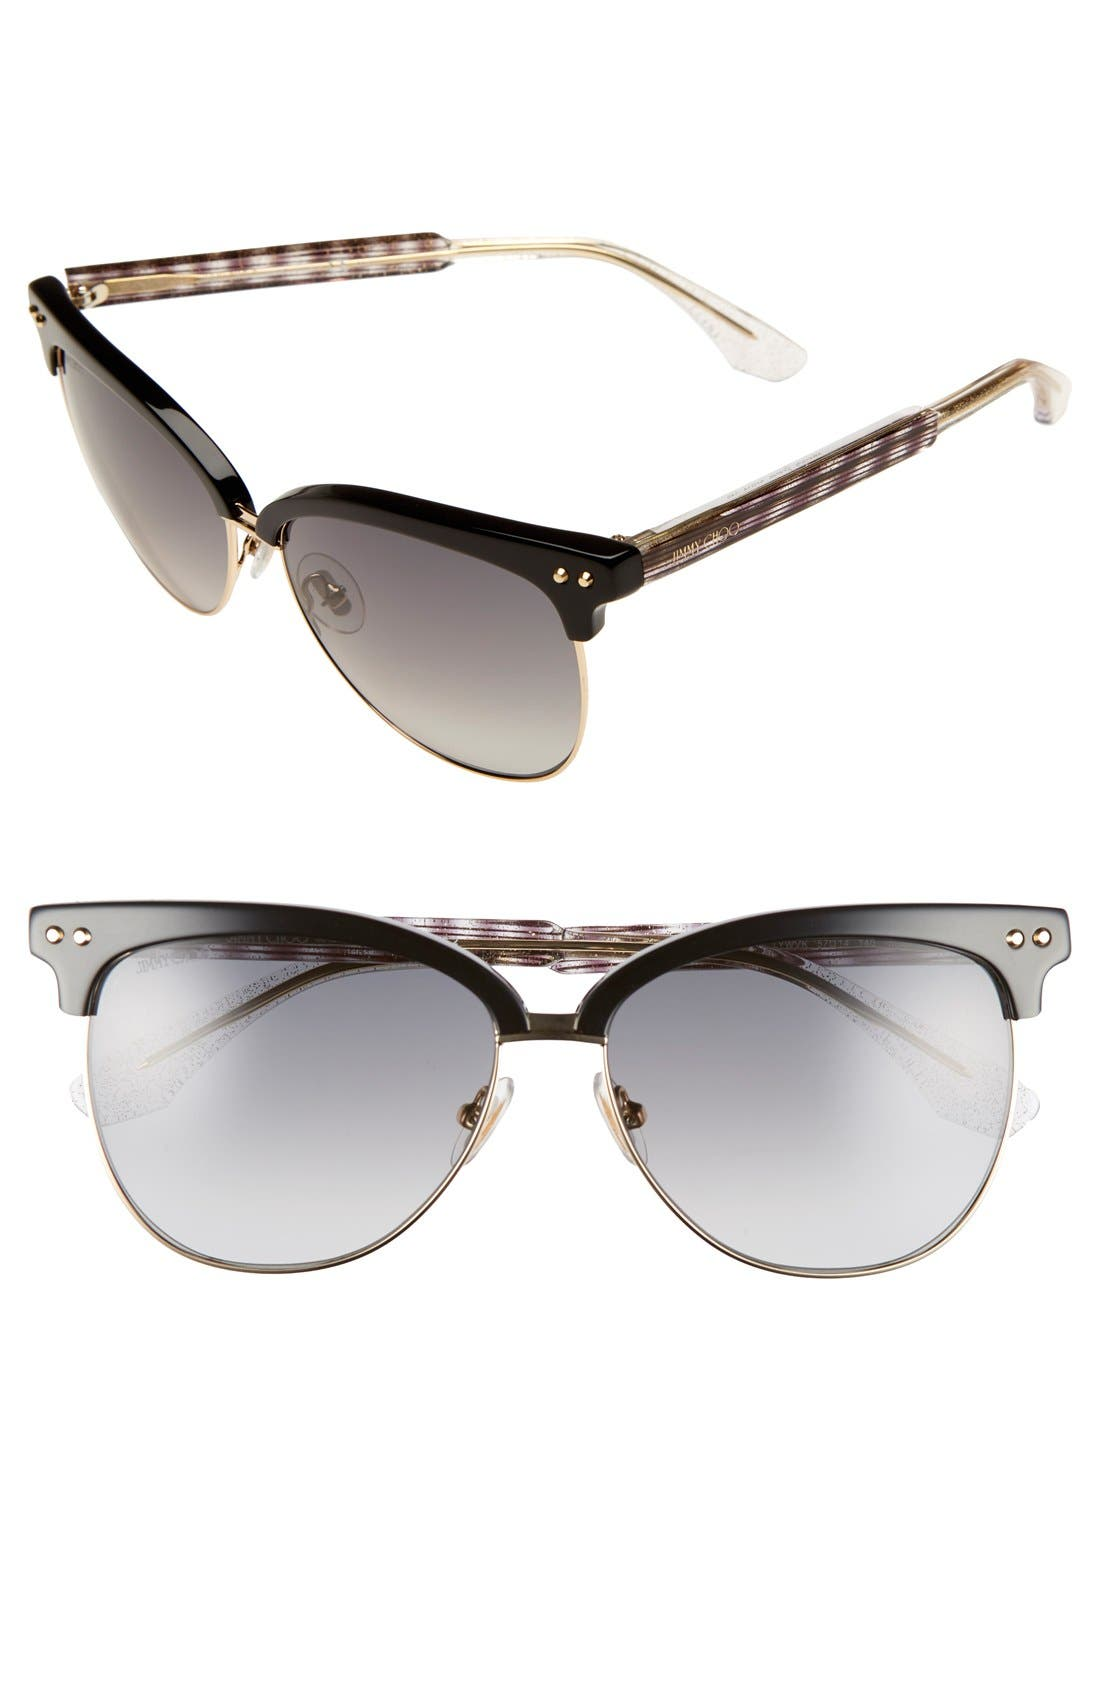 Main Image - Jimmy Choo 'Aryaya' 57mm Retro Sunglasses